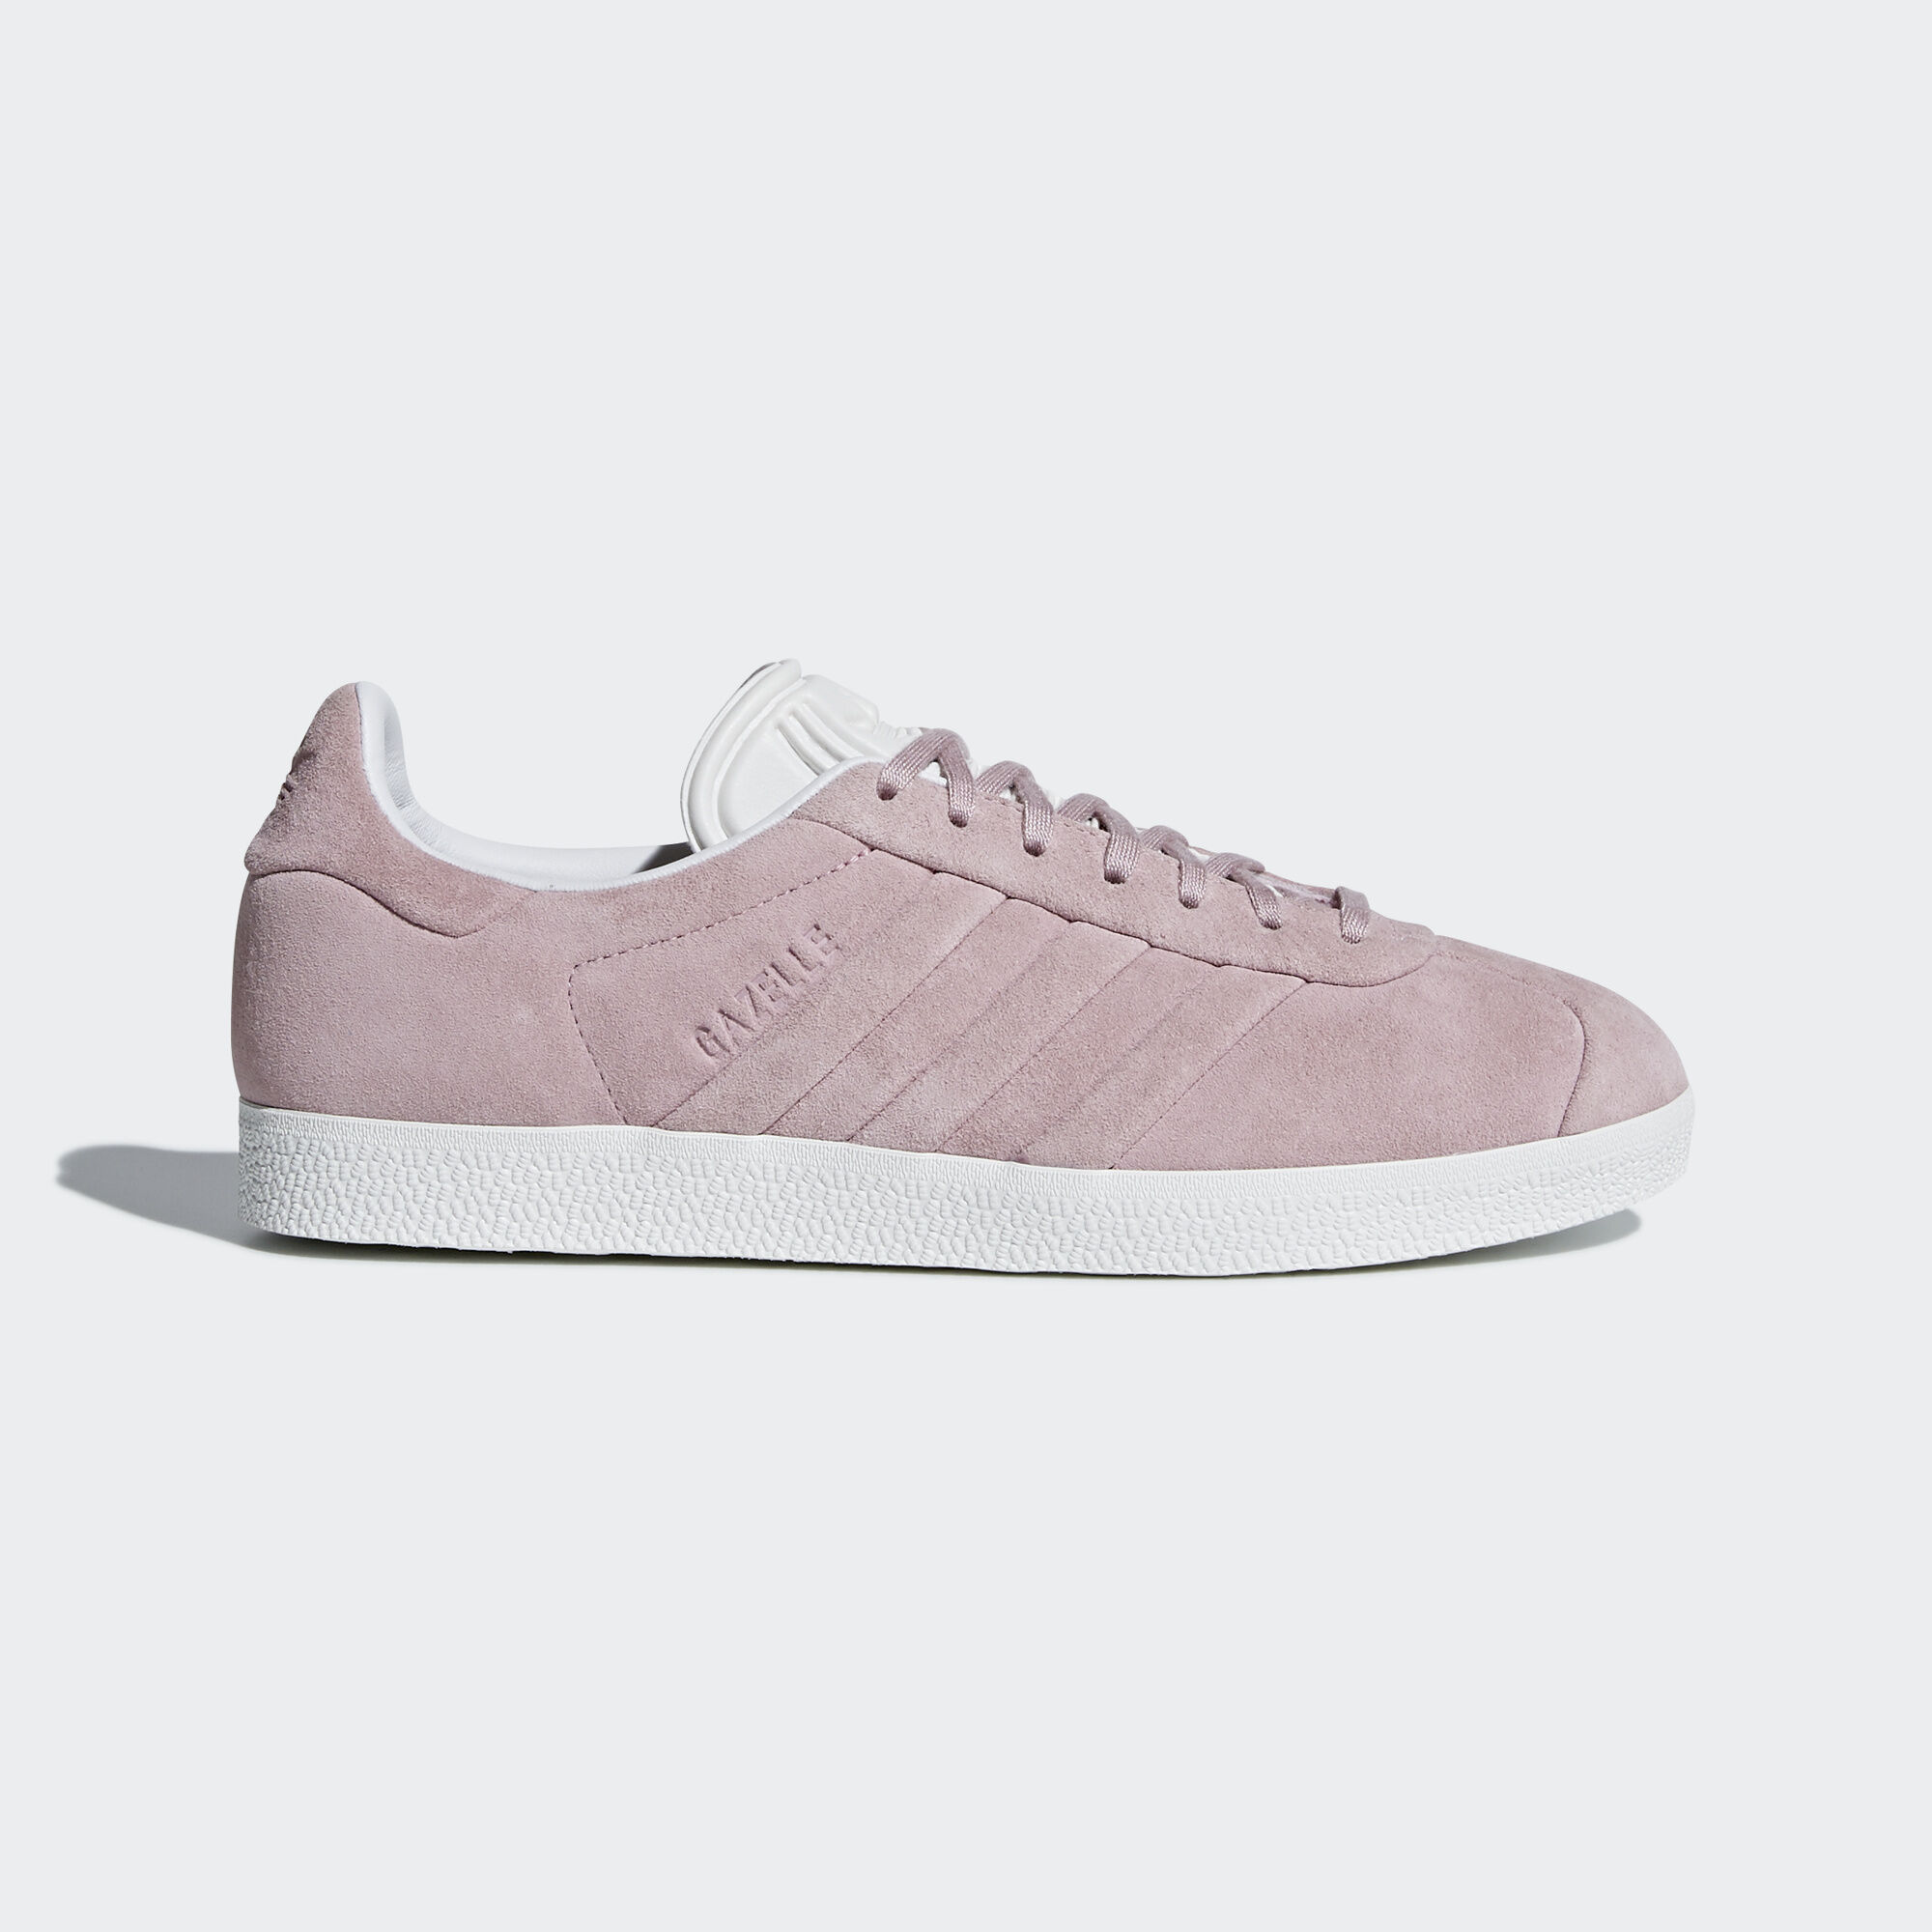 848144e4dbbf91 adidas - Gazelle Stitch and Turn Shoes Wonder Pink Wonder Pink Ftwr White  BB6708. Women Originals